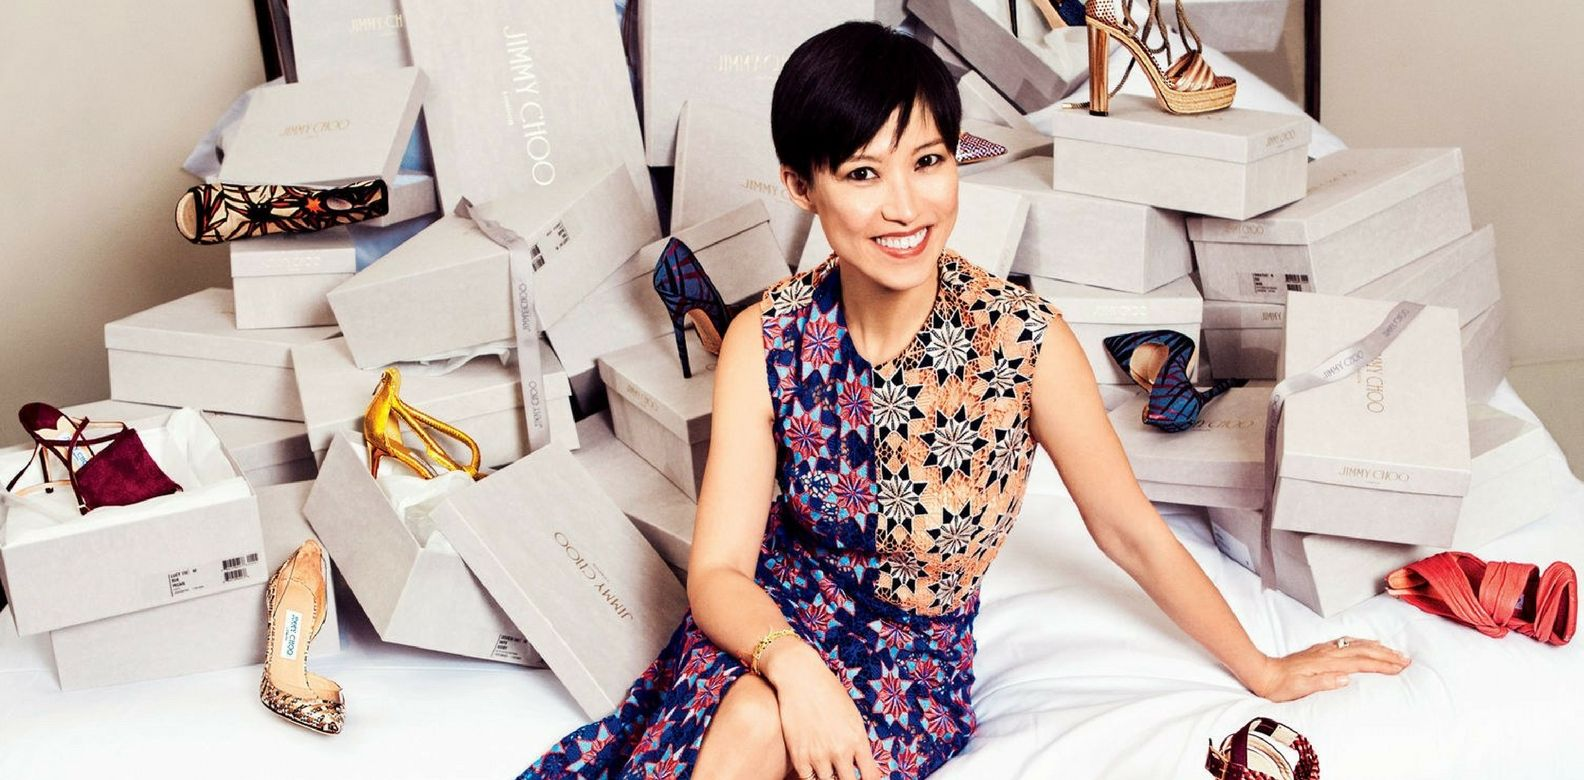 7 Things About Jimmy Choo's Creative Director Sandra Choi